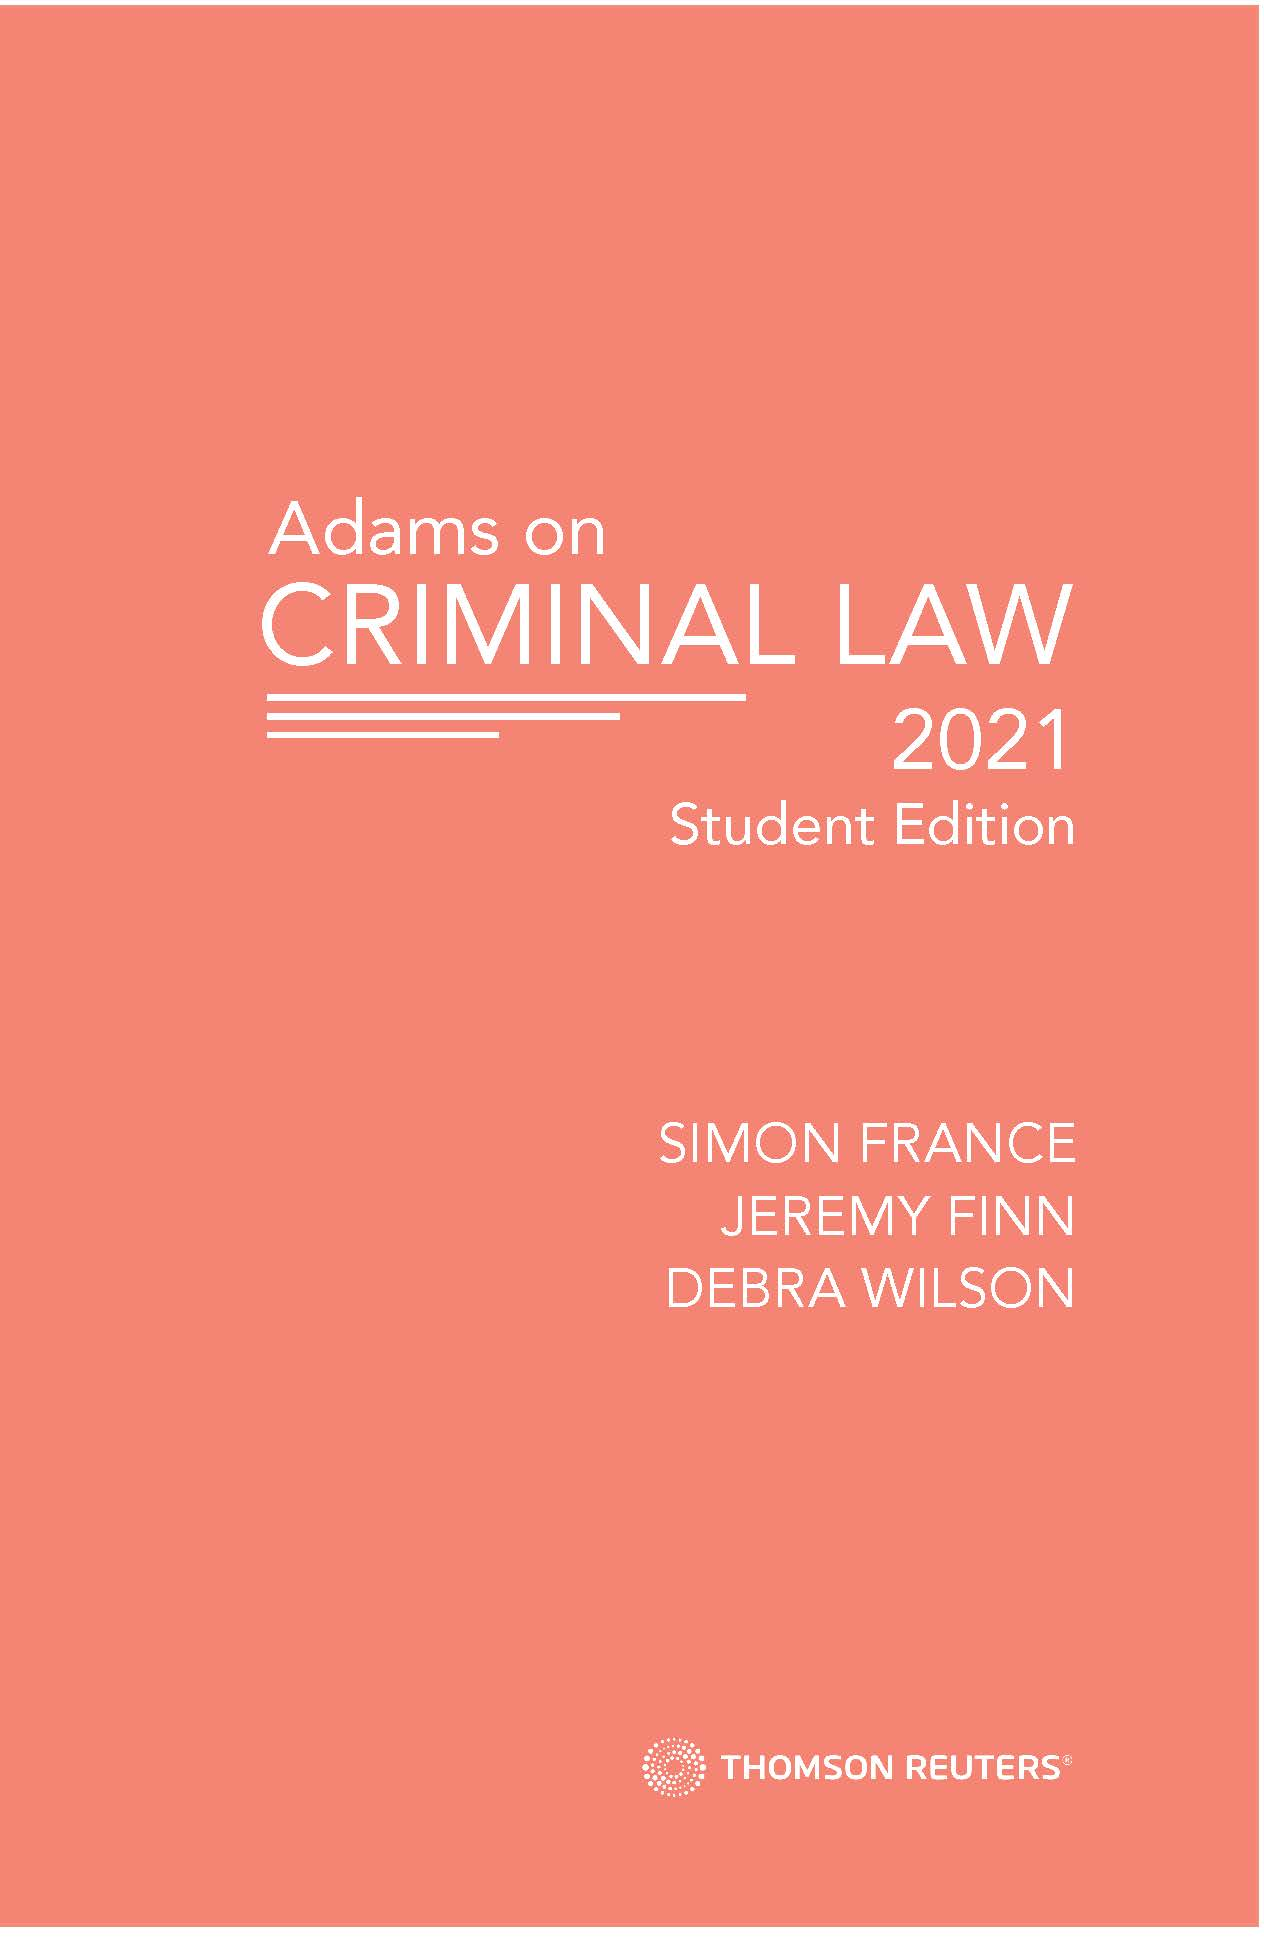 Adams on Criminal Law 2021 Student Edition (bk)